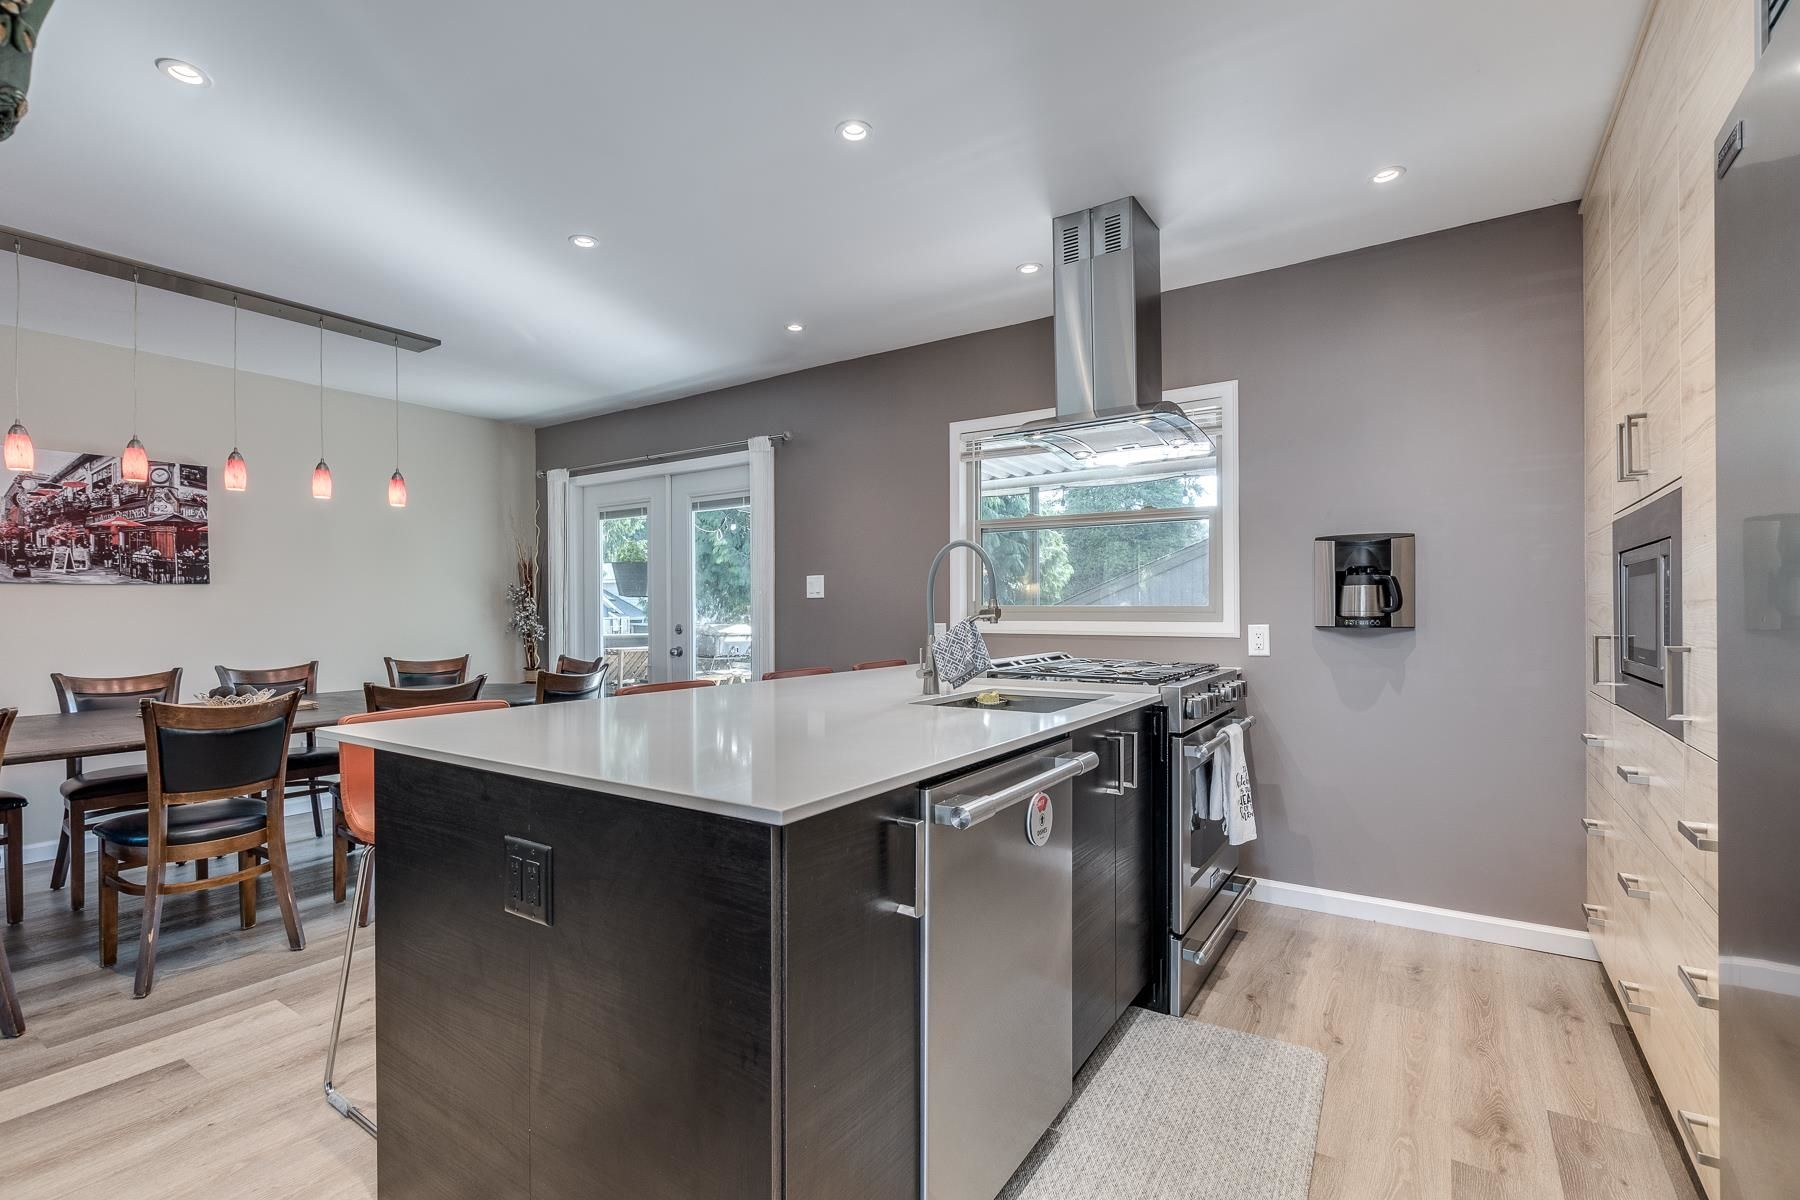 Photo 12: Photos: 3671 SOMERSET Street in Port Coquitlam: Lincoln Park PQ House for sale : MLS®# R2610216